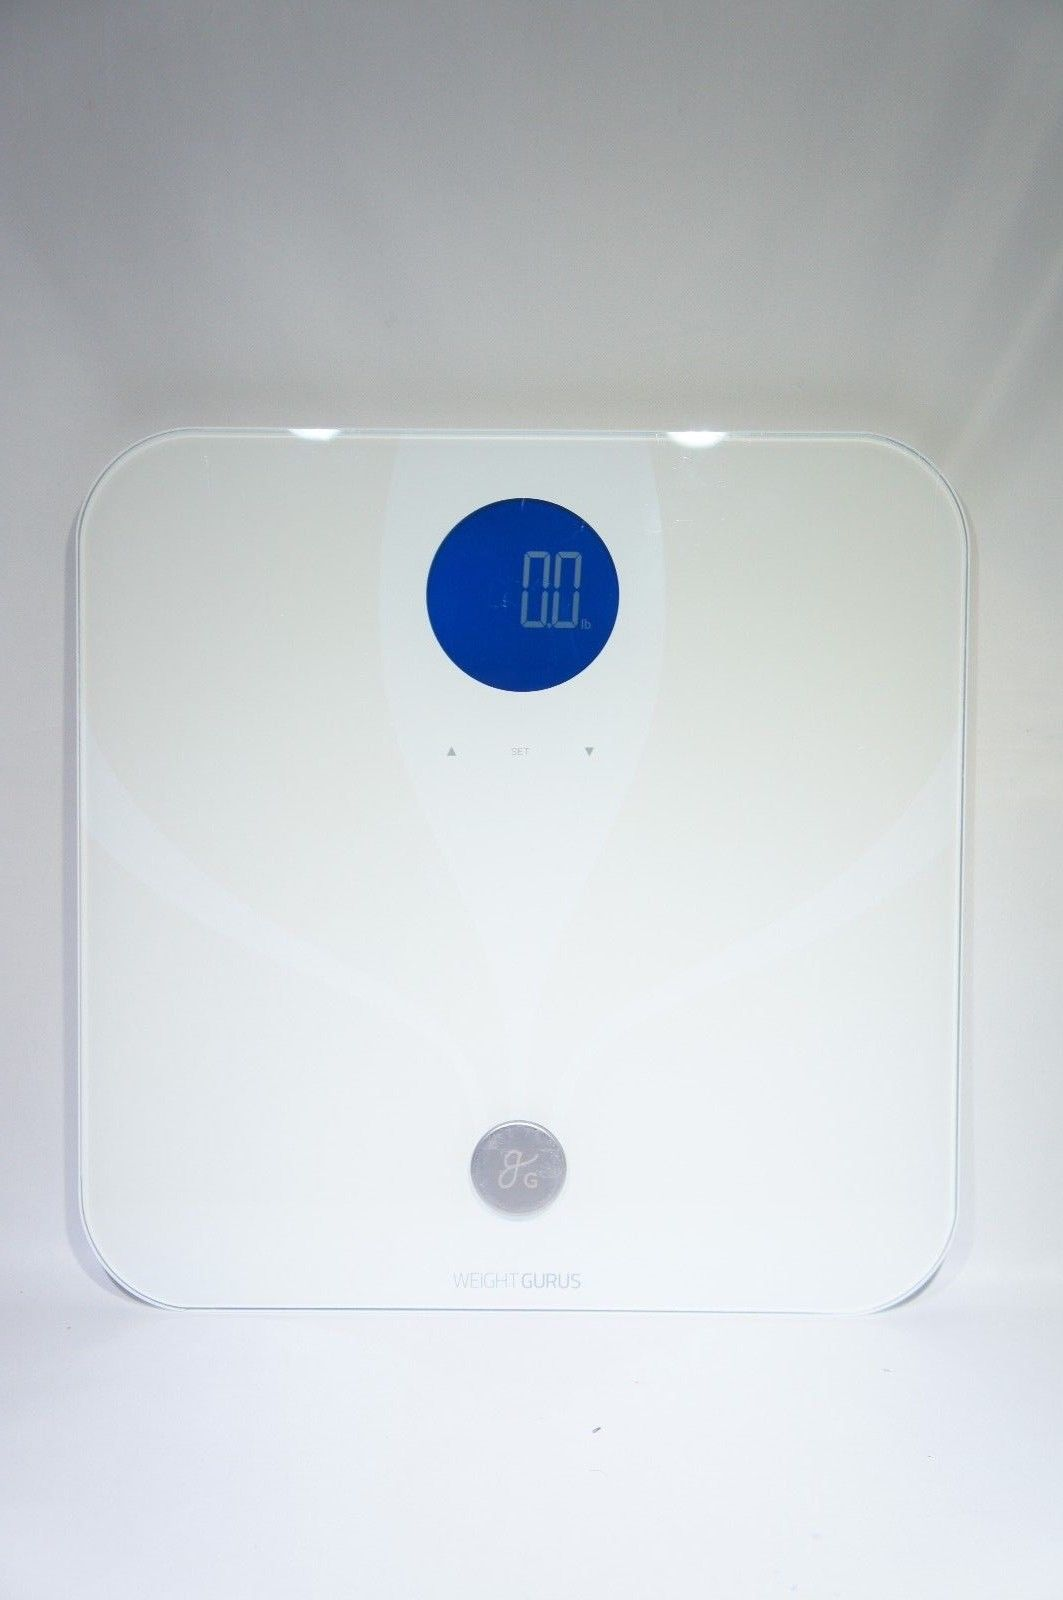 Weight Gurus WiFi Smart Connected Body Fat Scale White (LIKE NEW)